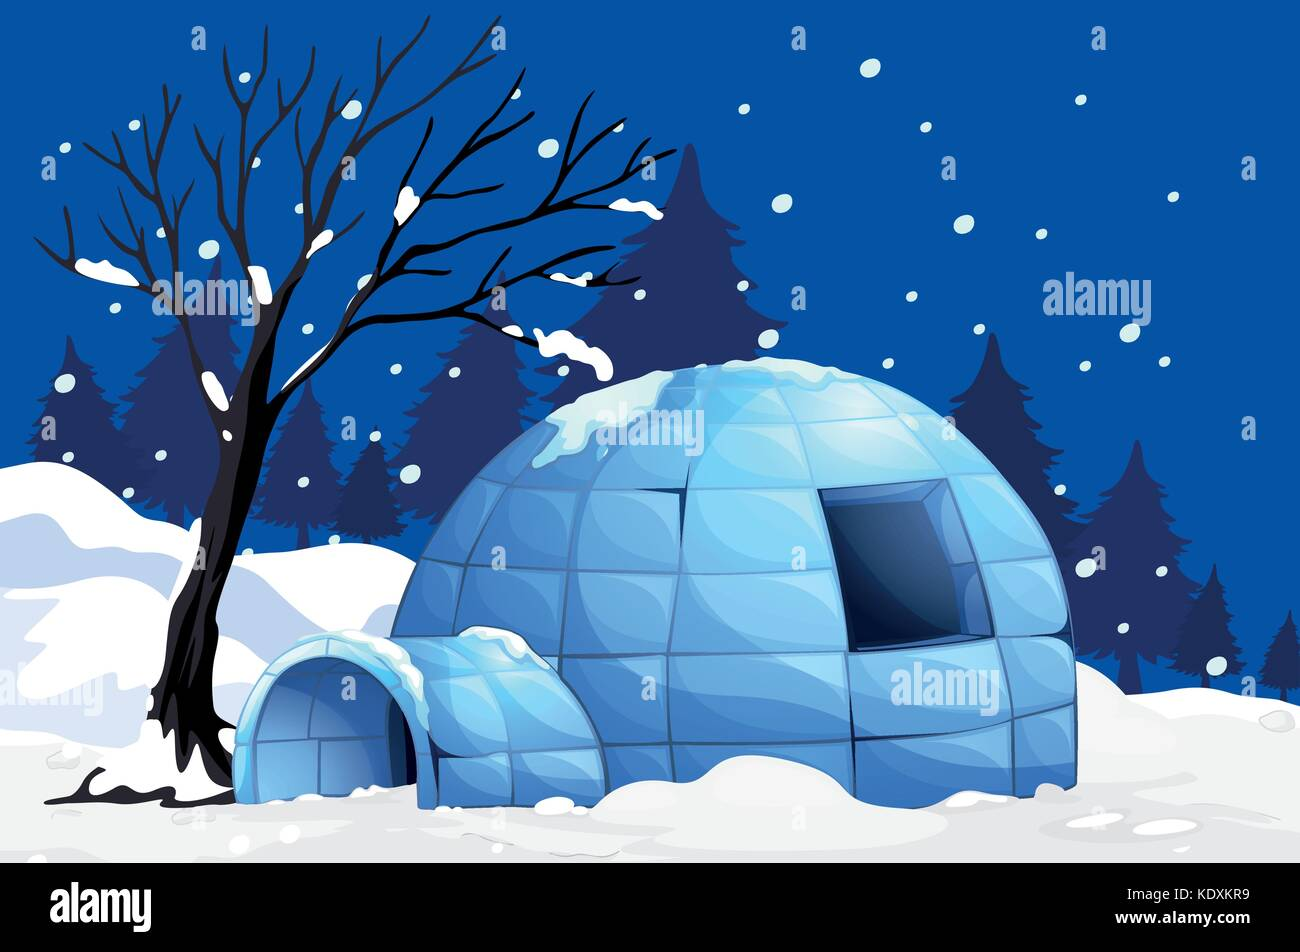 hight resolution of nature scene with igloo on snowy night illustration